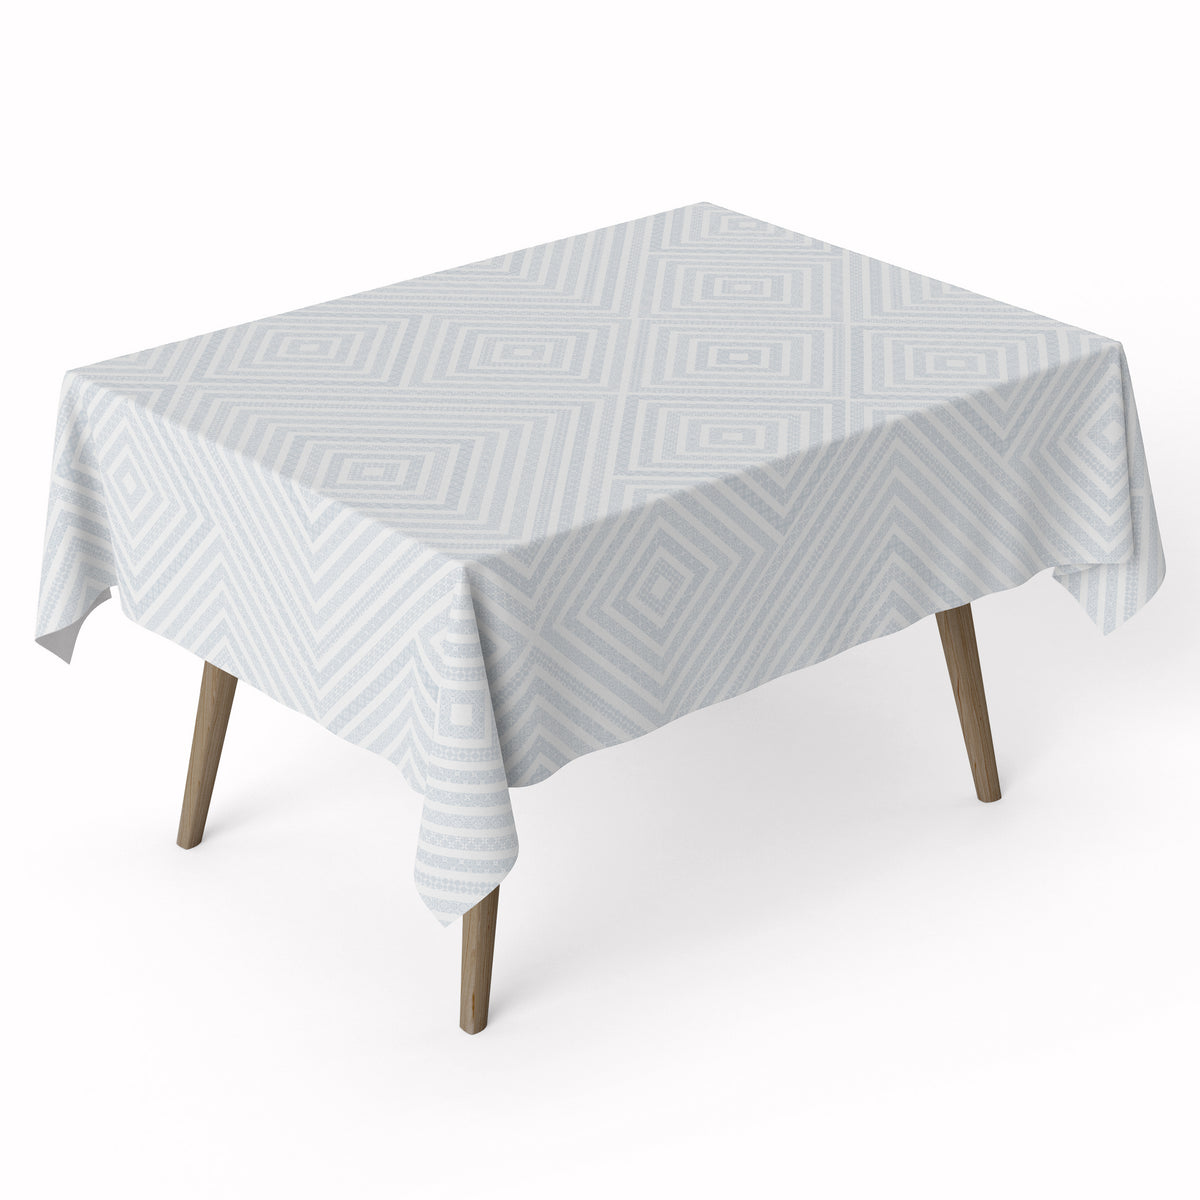 GEO TABLECLOTH